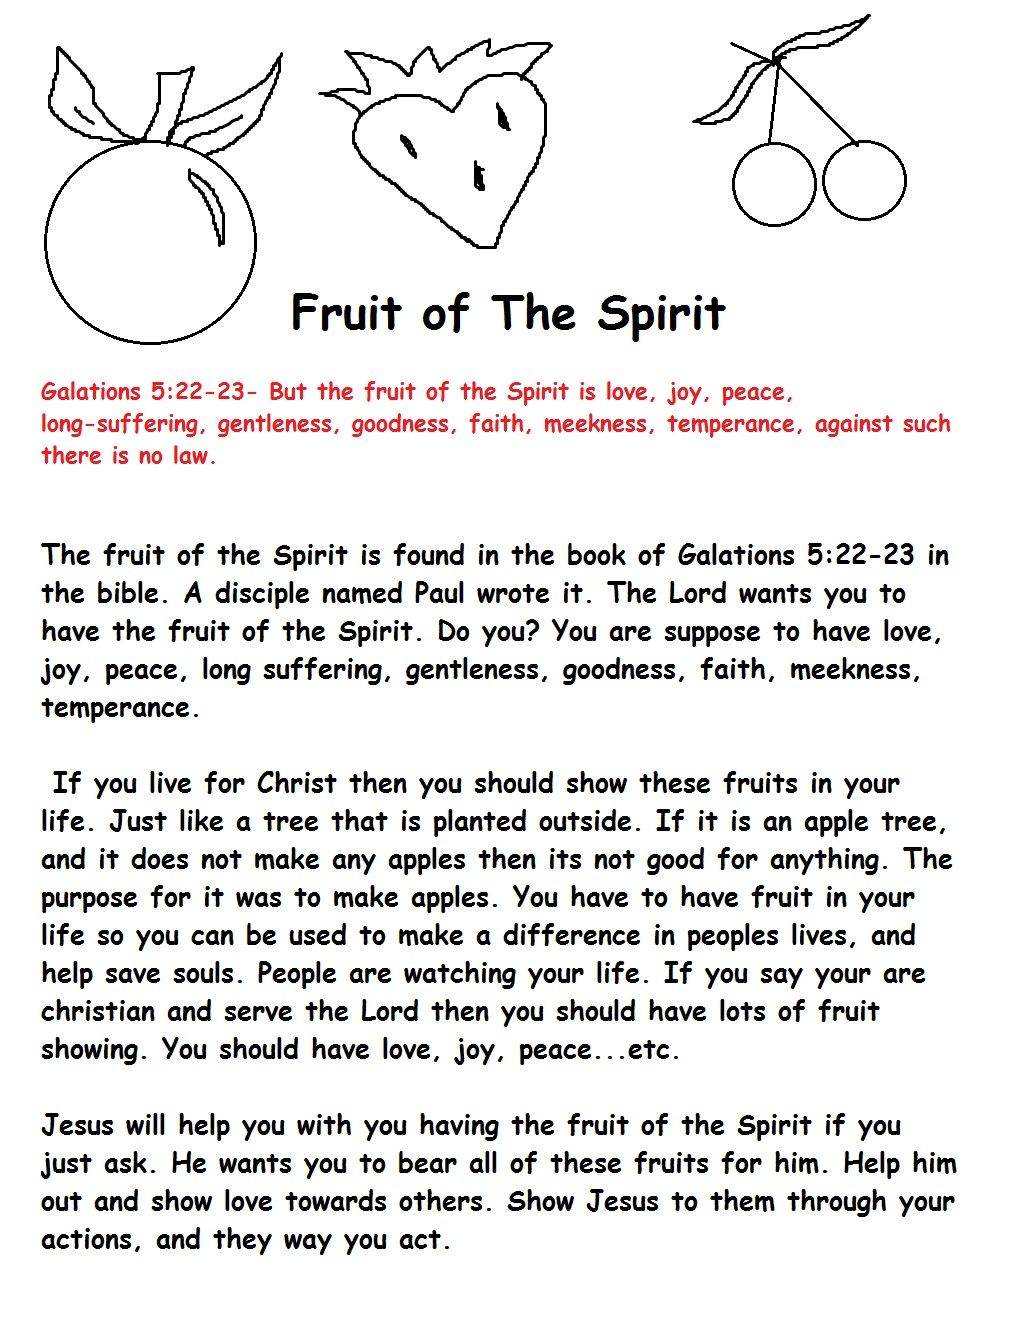 photograph relating to Fruits of the Spirit Printable named fruit of the spirit for young children Fruit of The Spirit Sunday